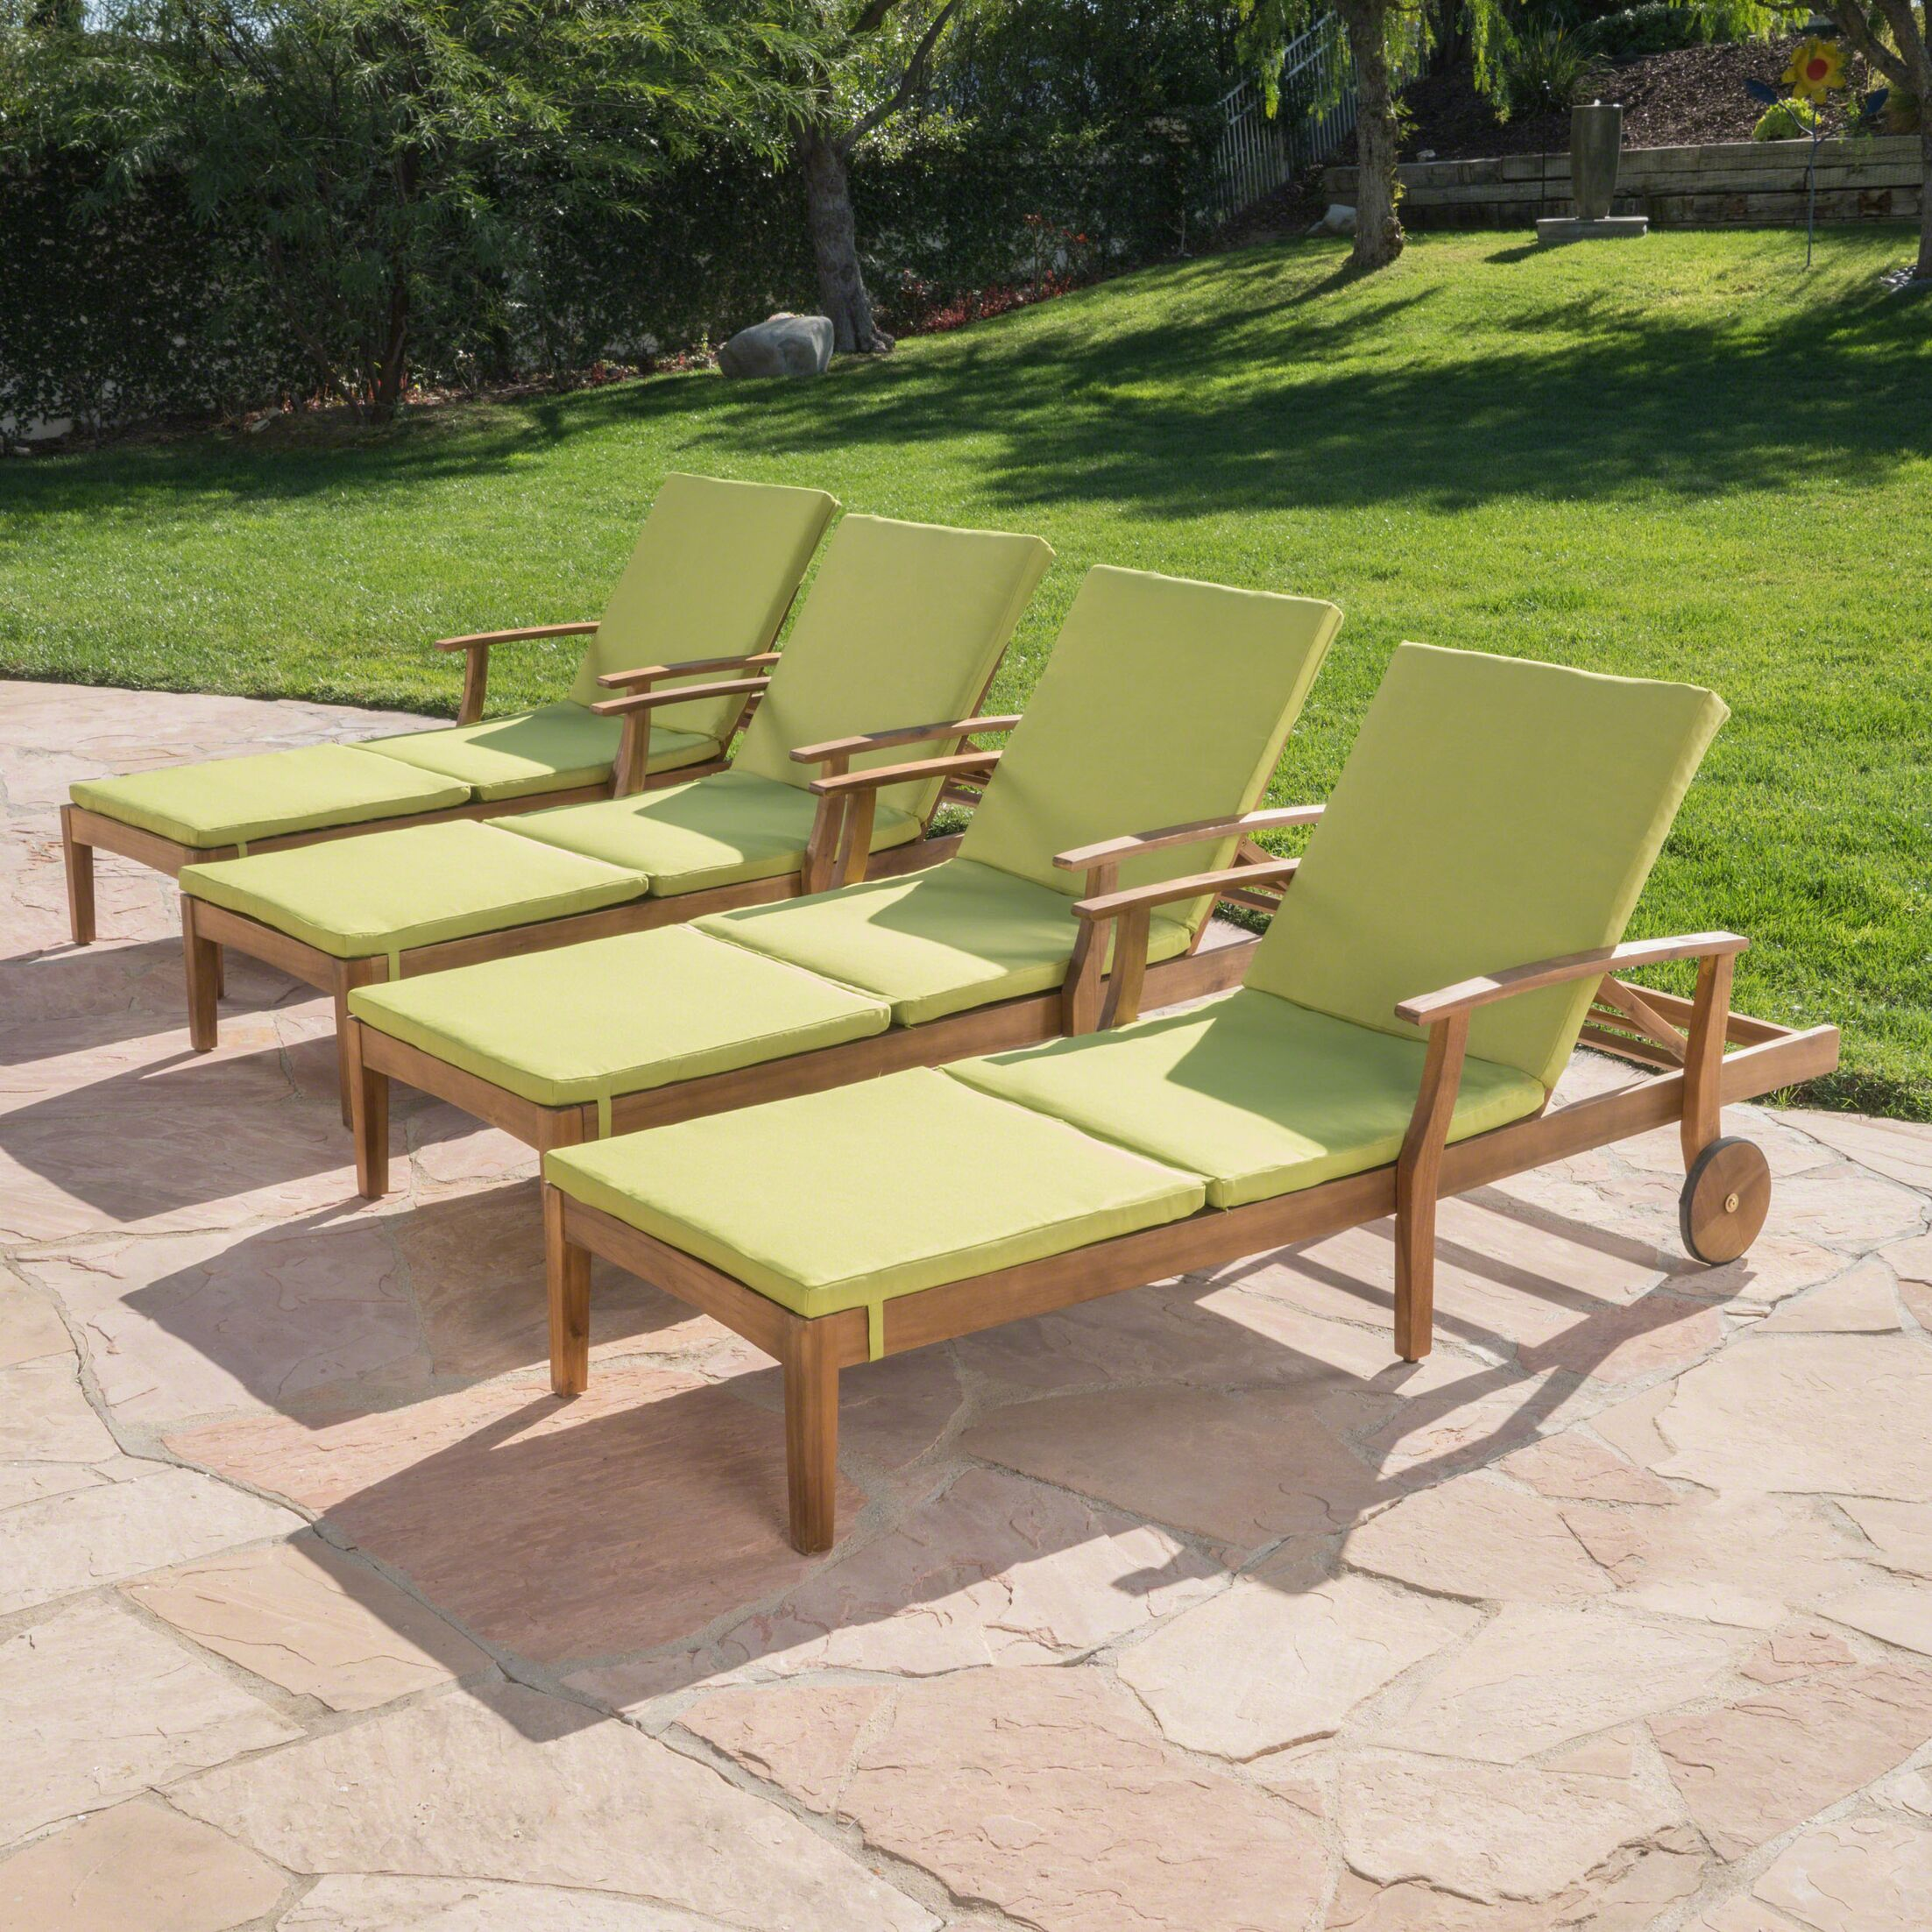 Balduin Reclining Chaise Lounge with Cushion Color: Teak/Green